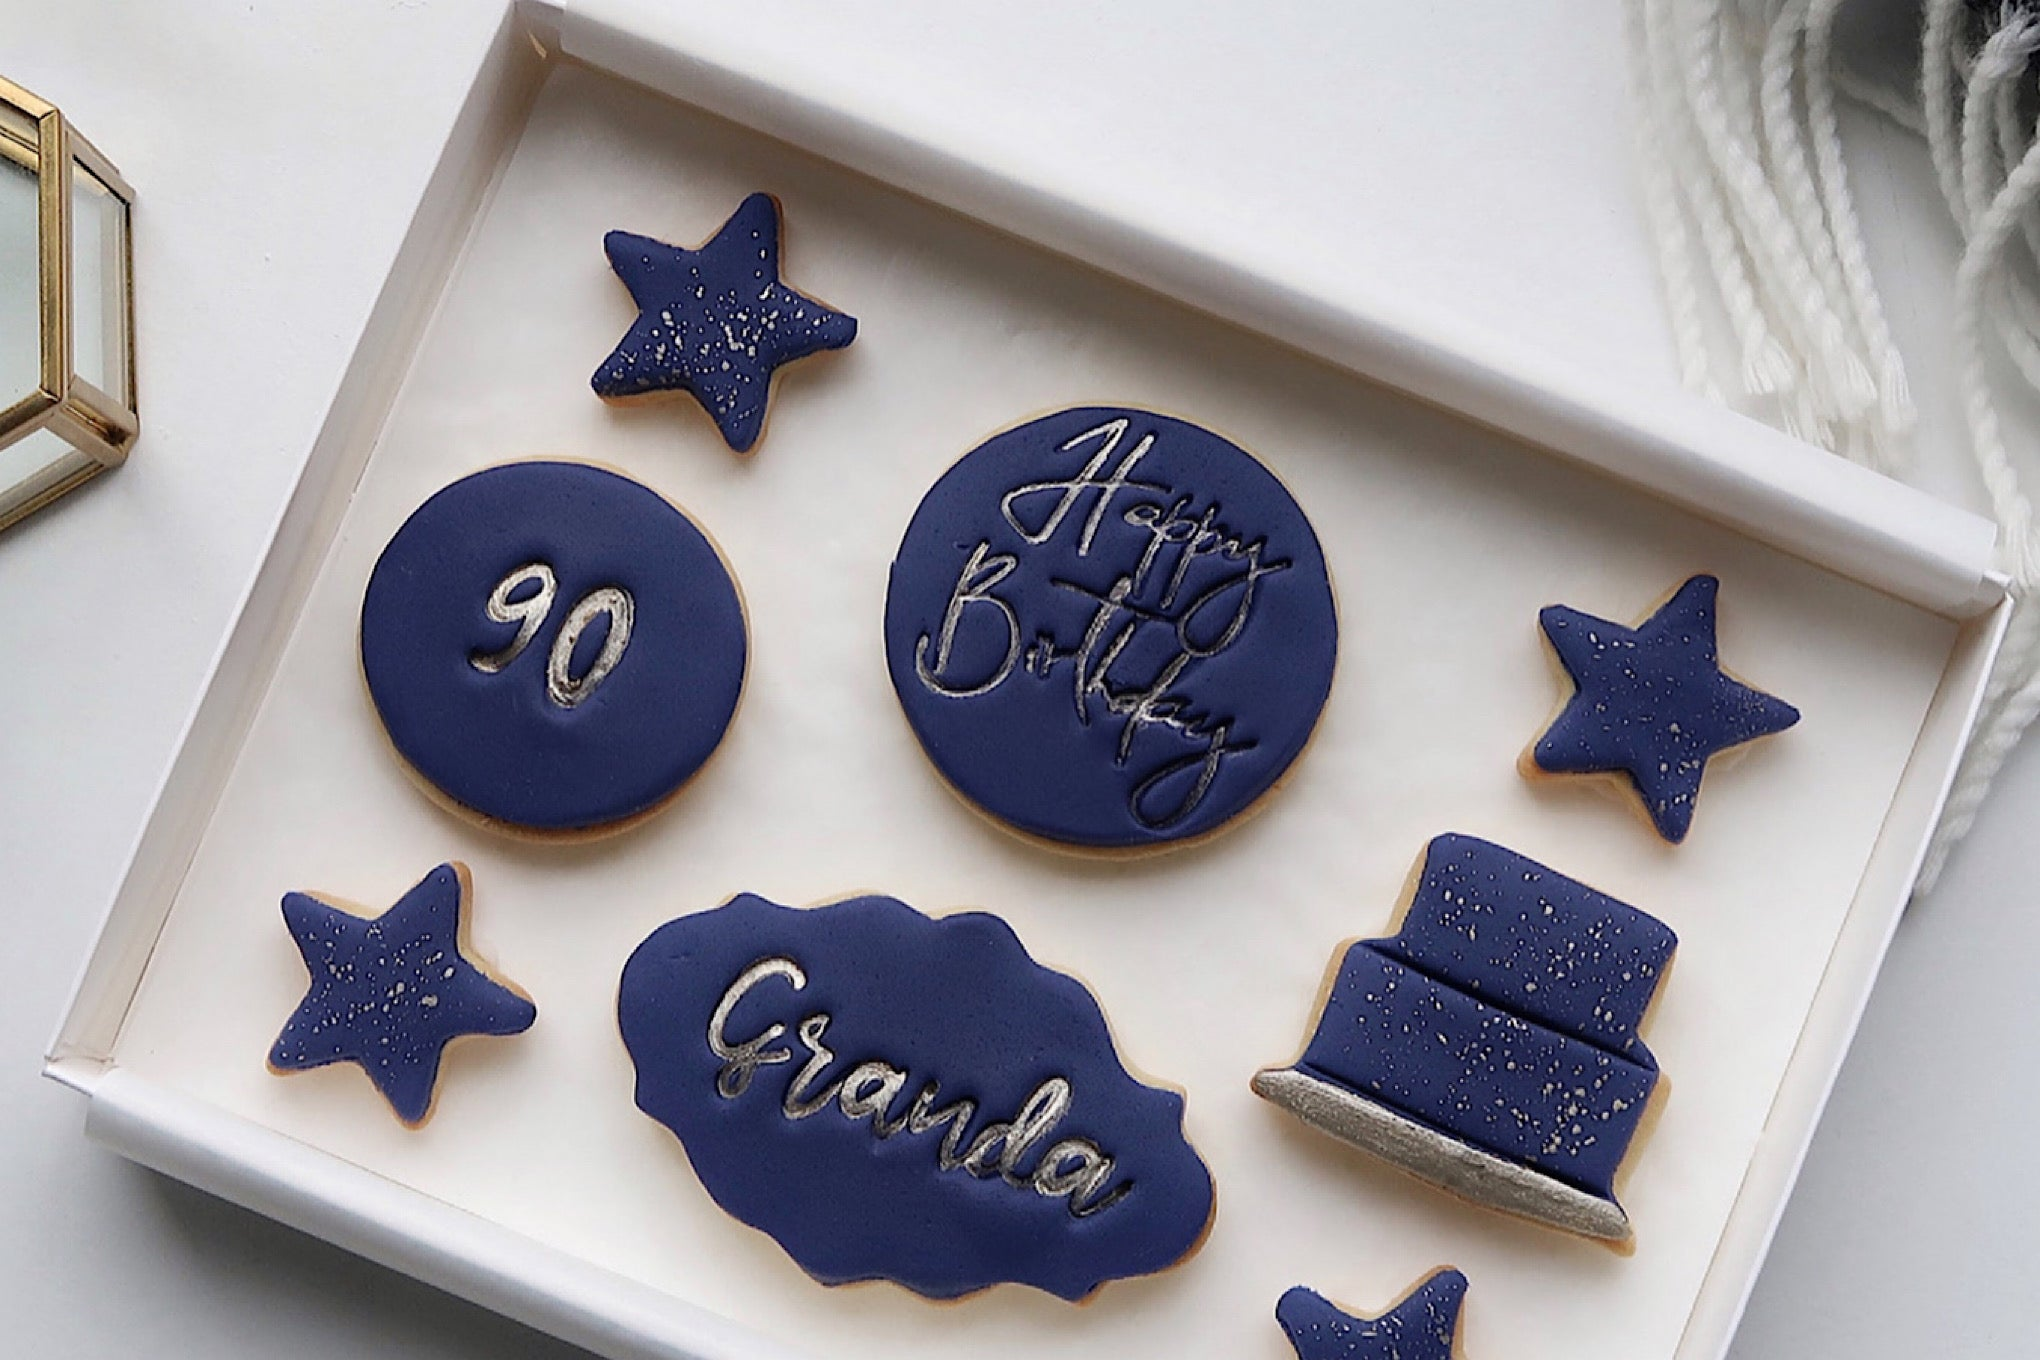 Letterbox Cookie Box for 90th Birthday